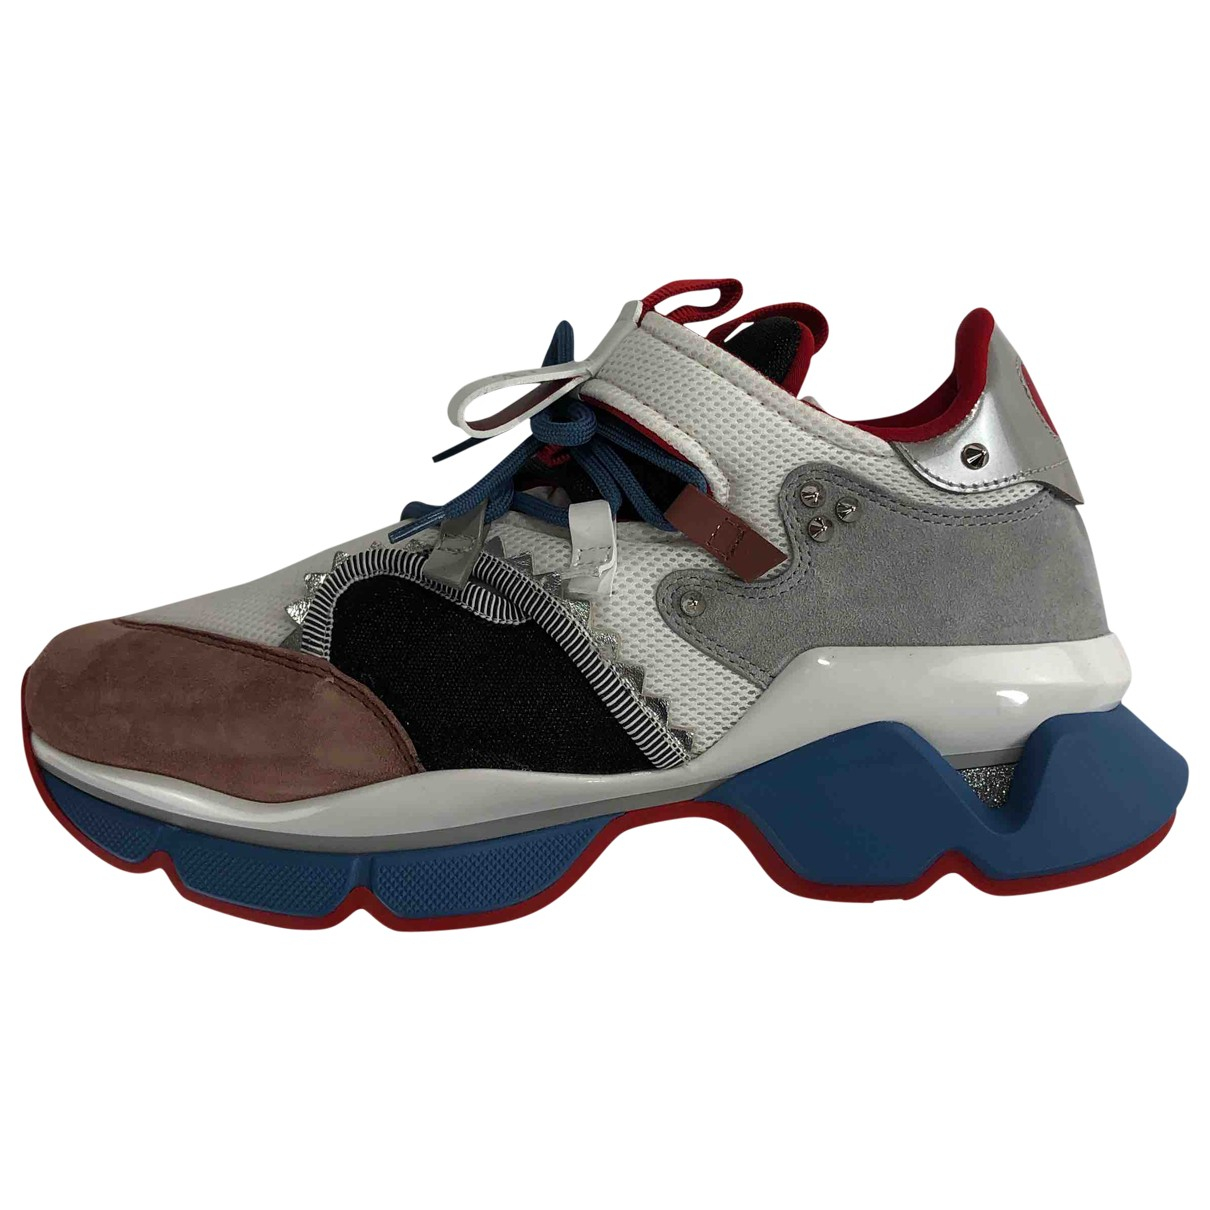 Christian Louboutin Red Runner Multicolour Cloth Trainers for Men 43 EU